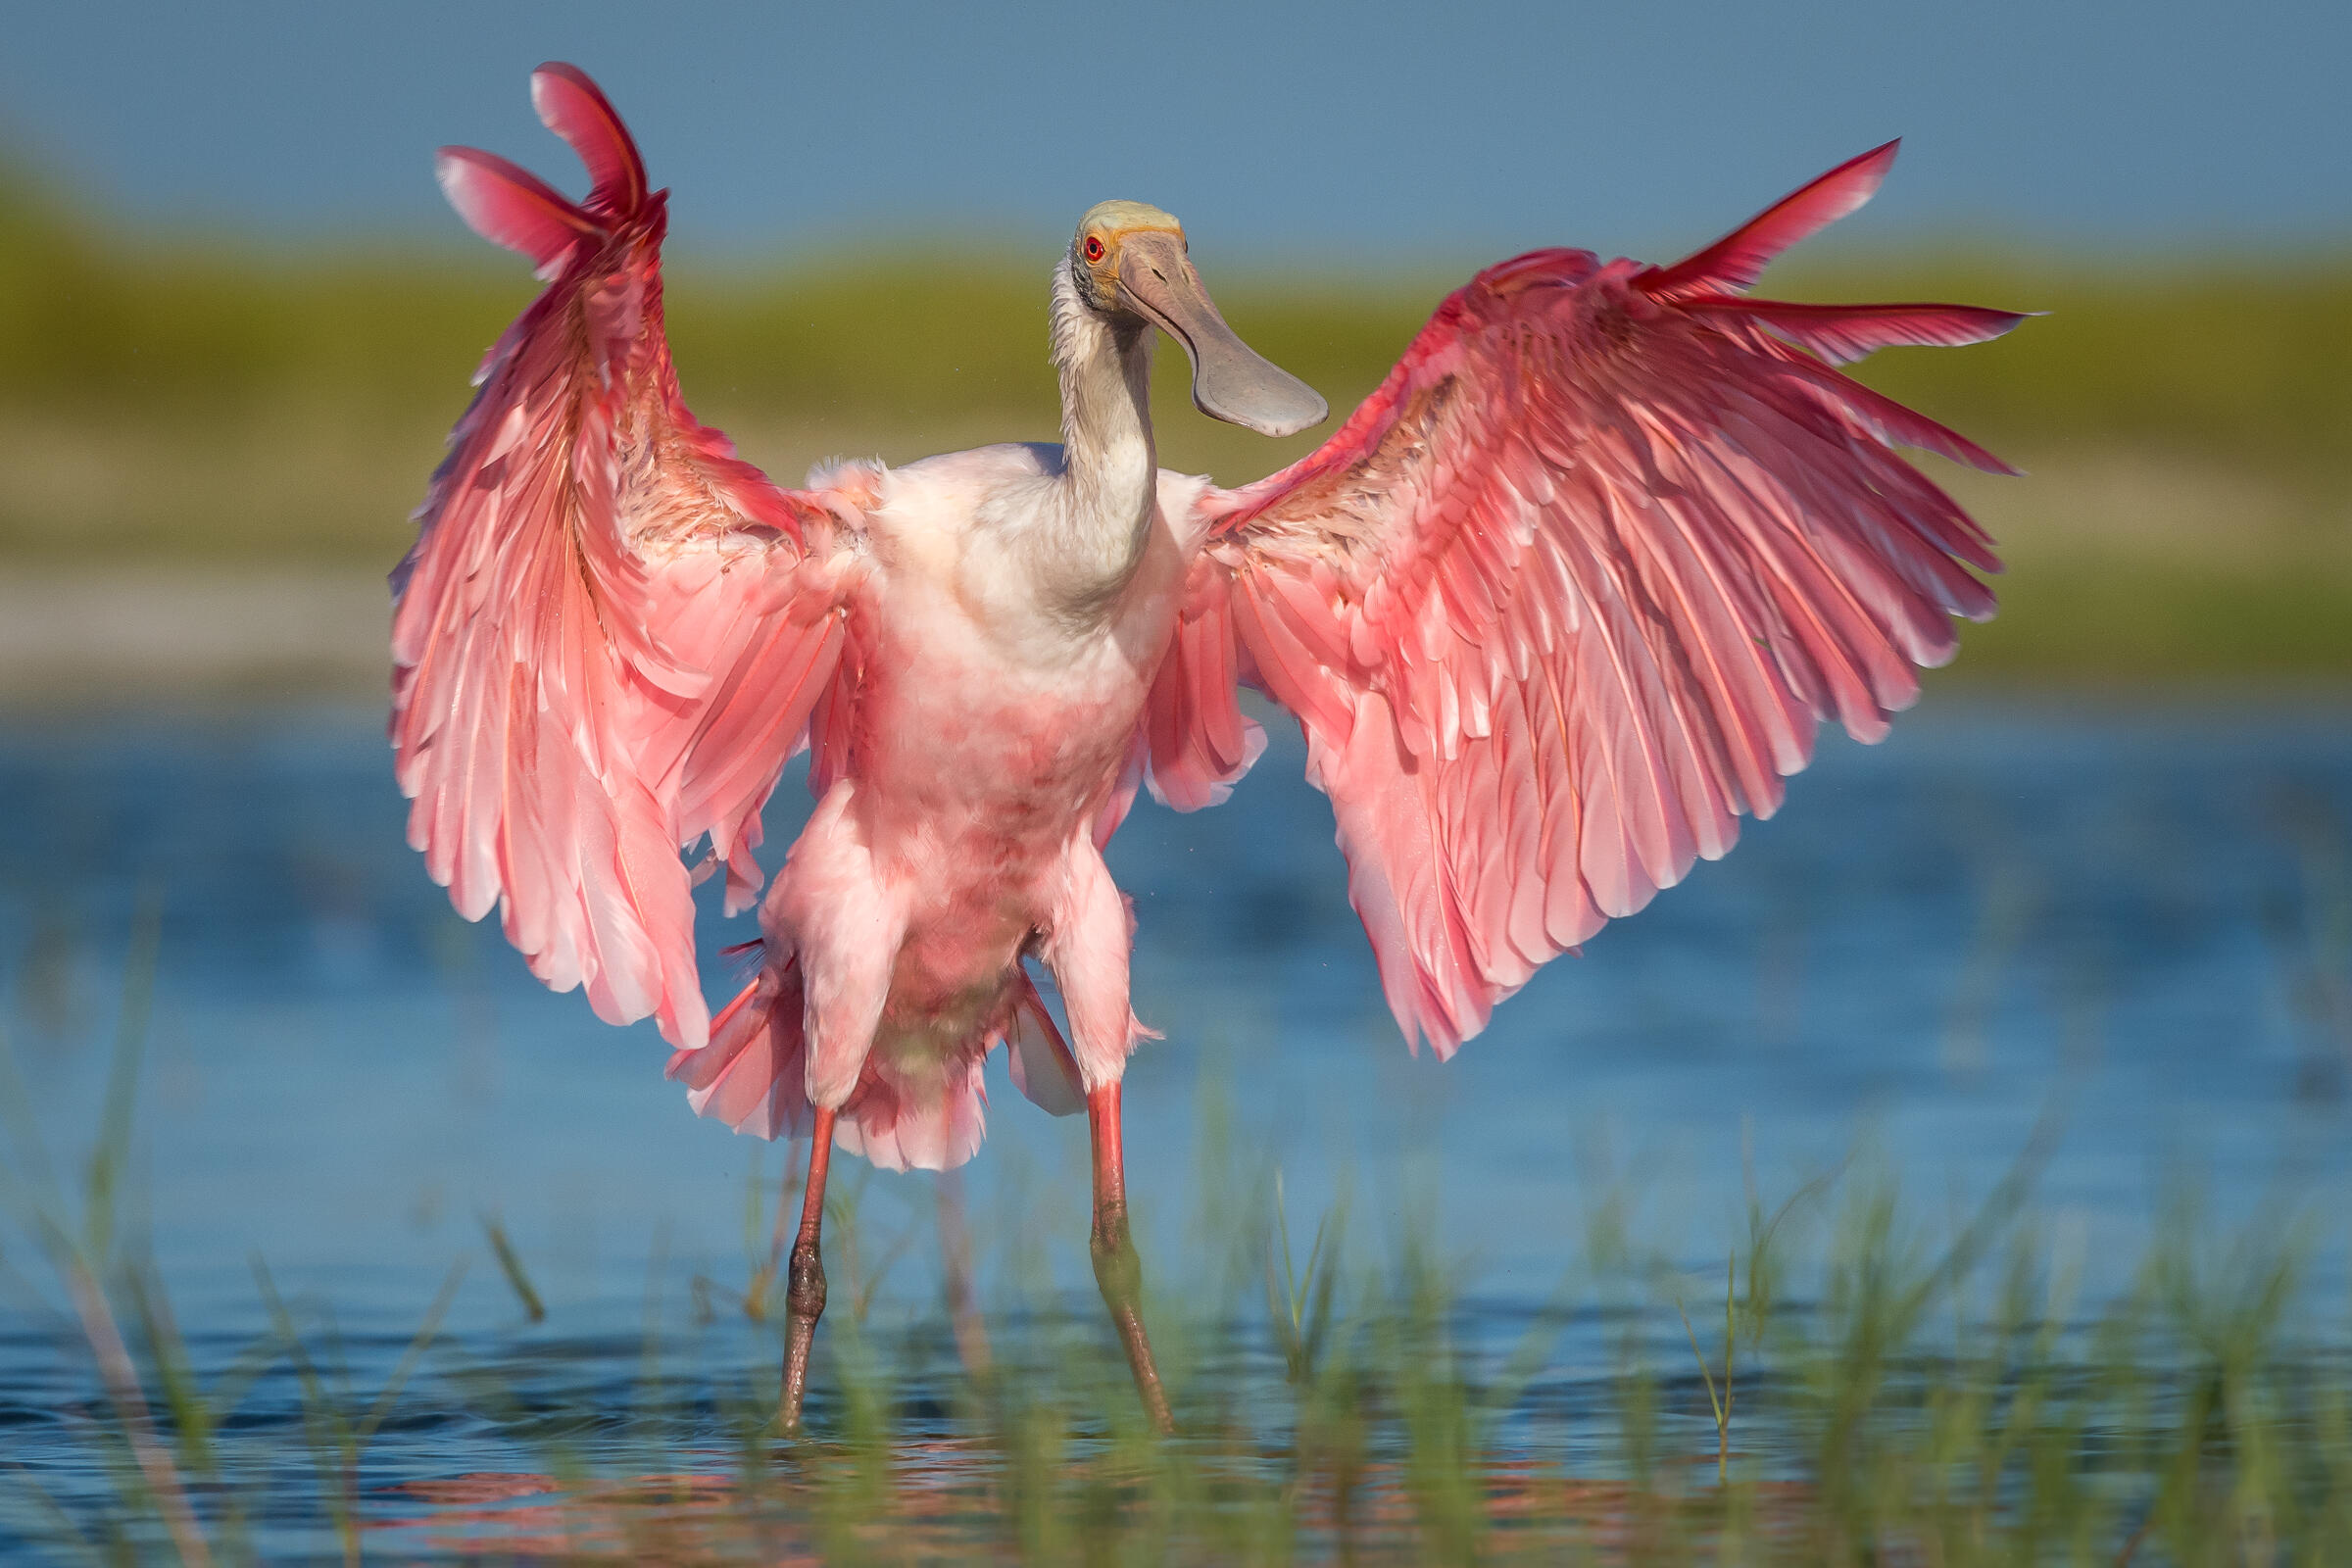 Roseate Spoonbill with wings outstretched